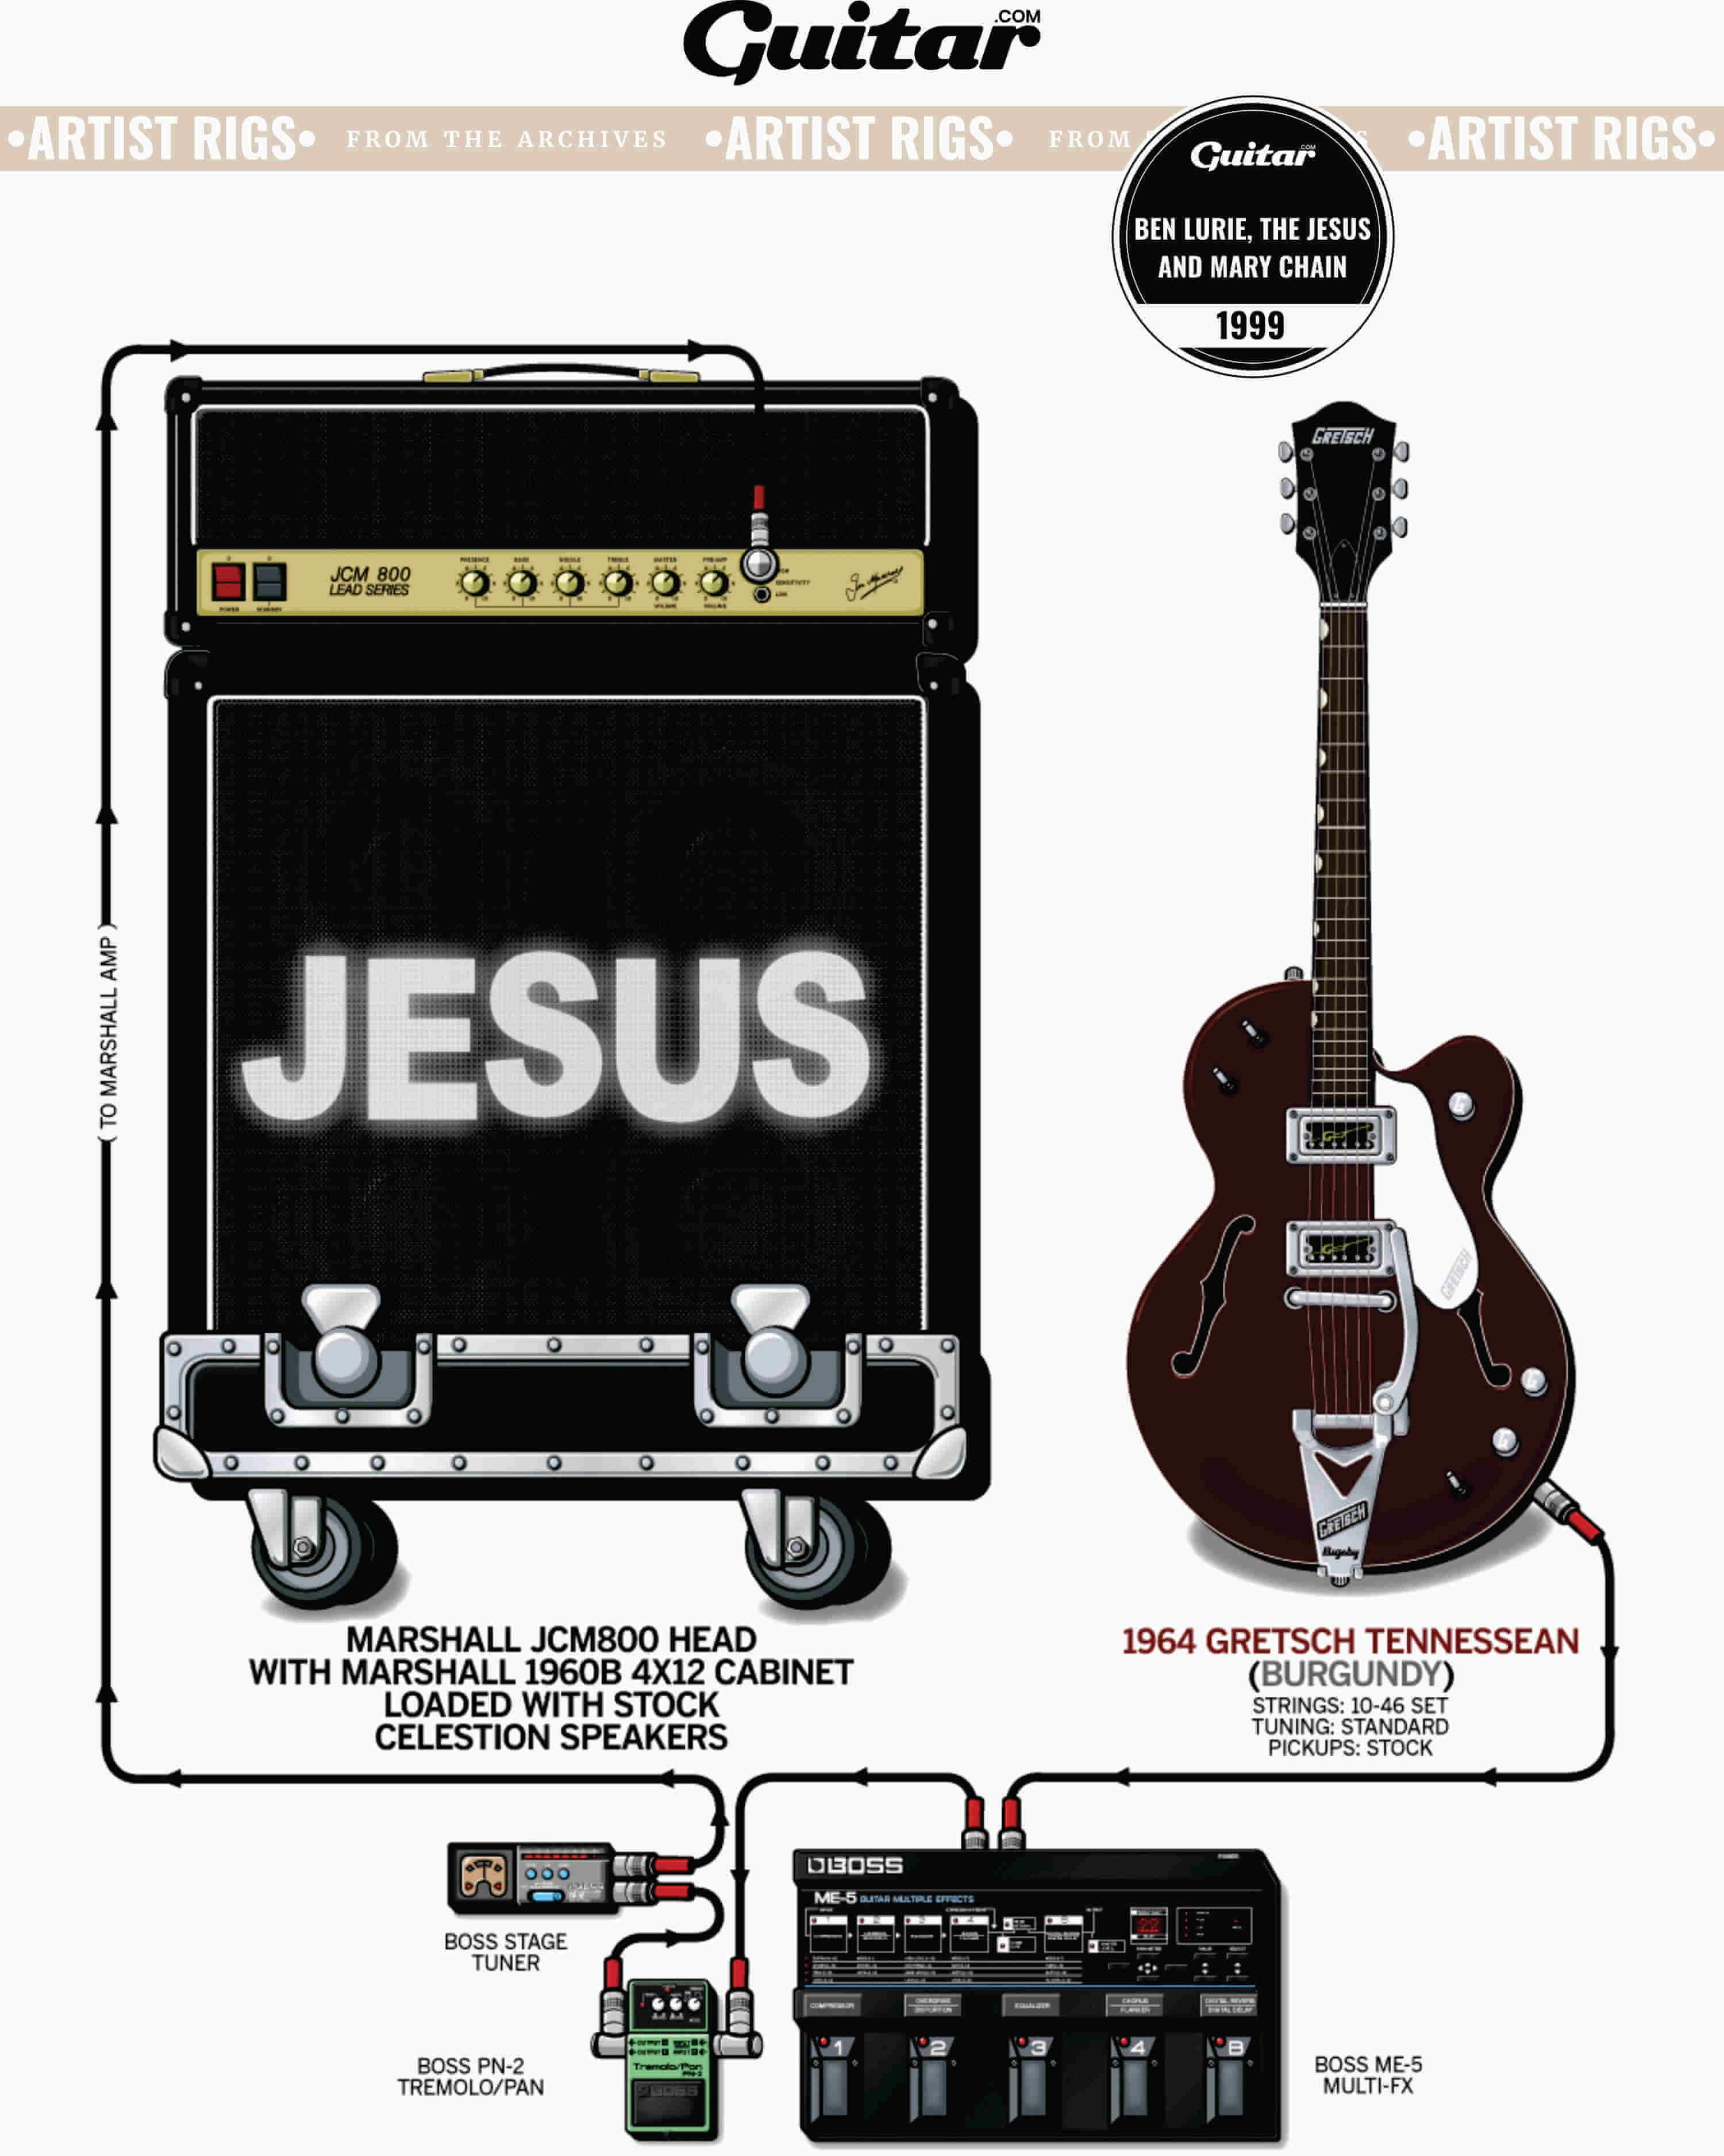 Rig Diagram: Ben Lurie, The Jesus And Mary Chain (1991)